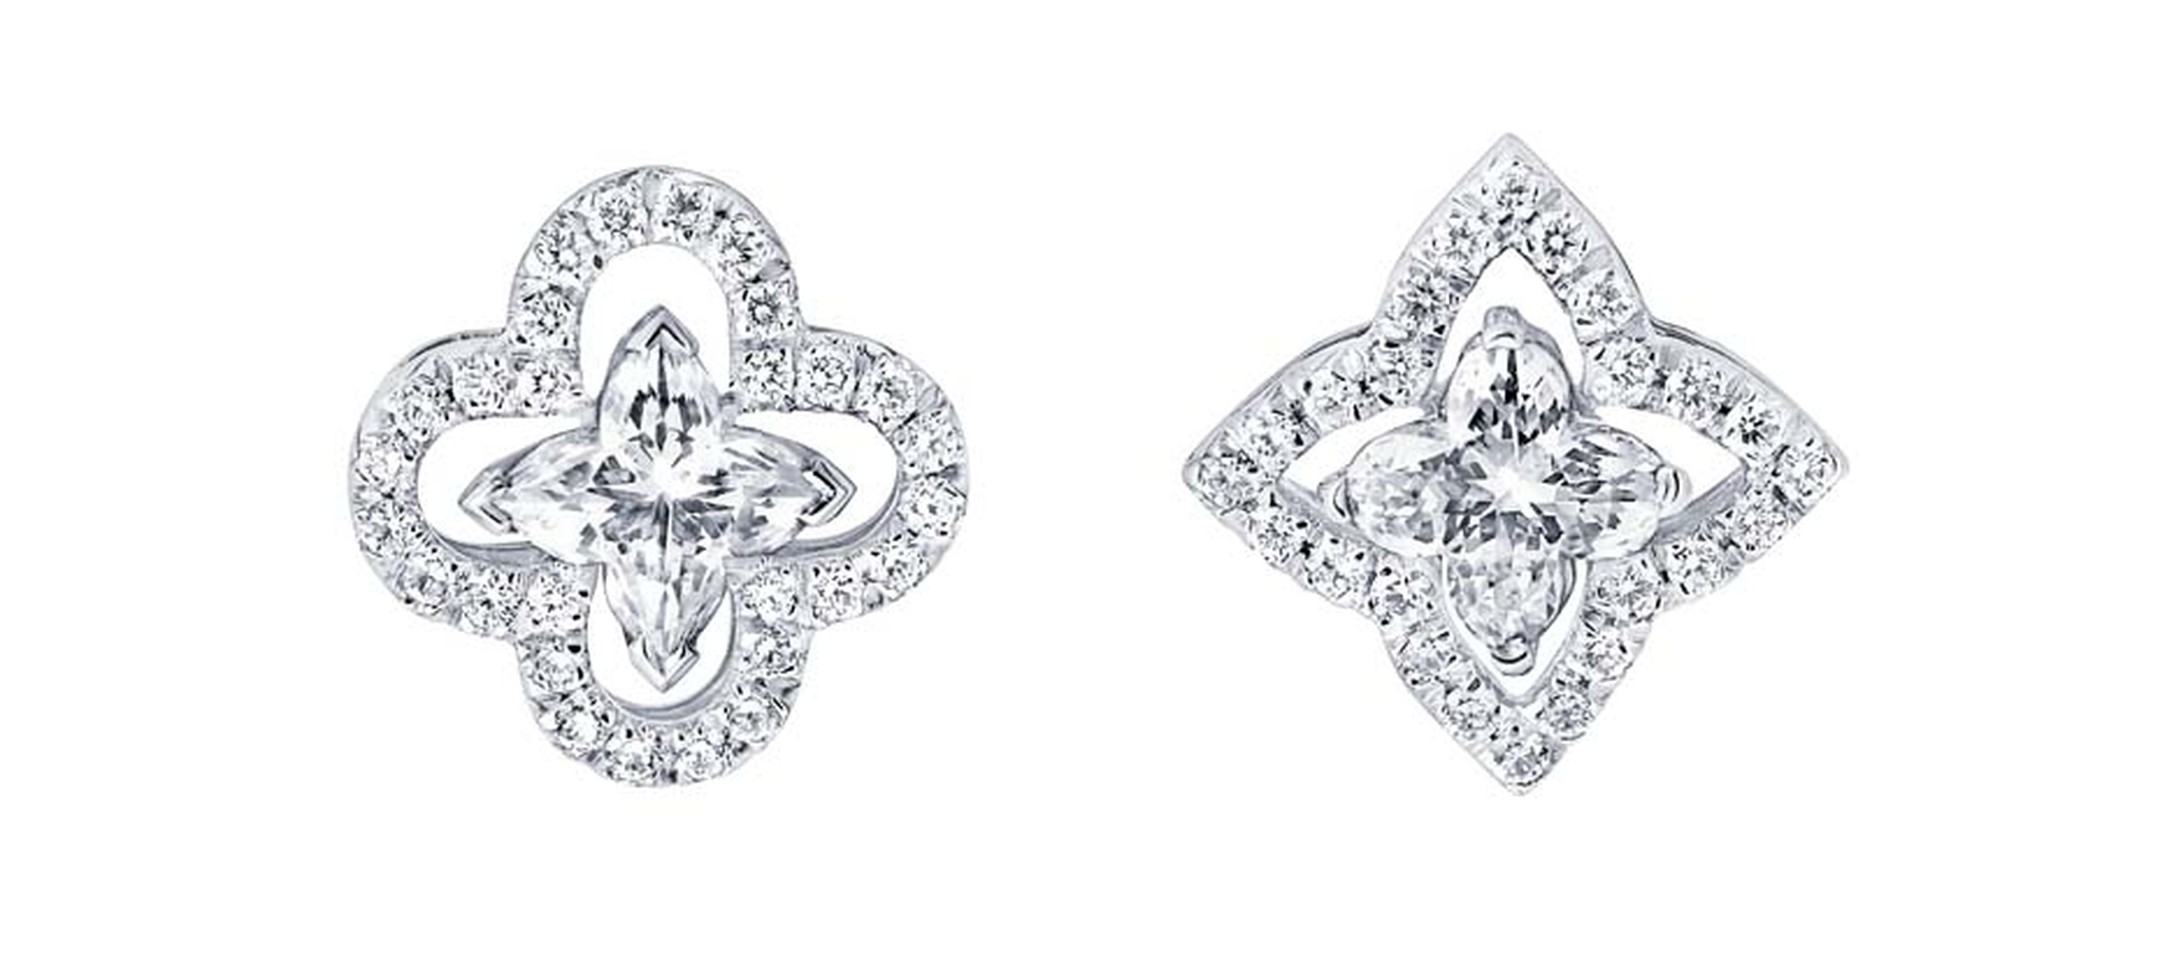 Mismatched Louis Vuitton Monogram Fusion diamond earrings, set with a star and flower solitaire diamond at the centre.